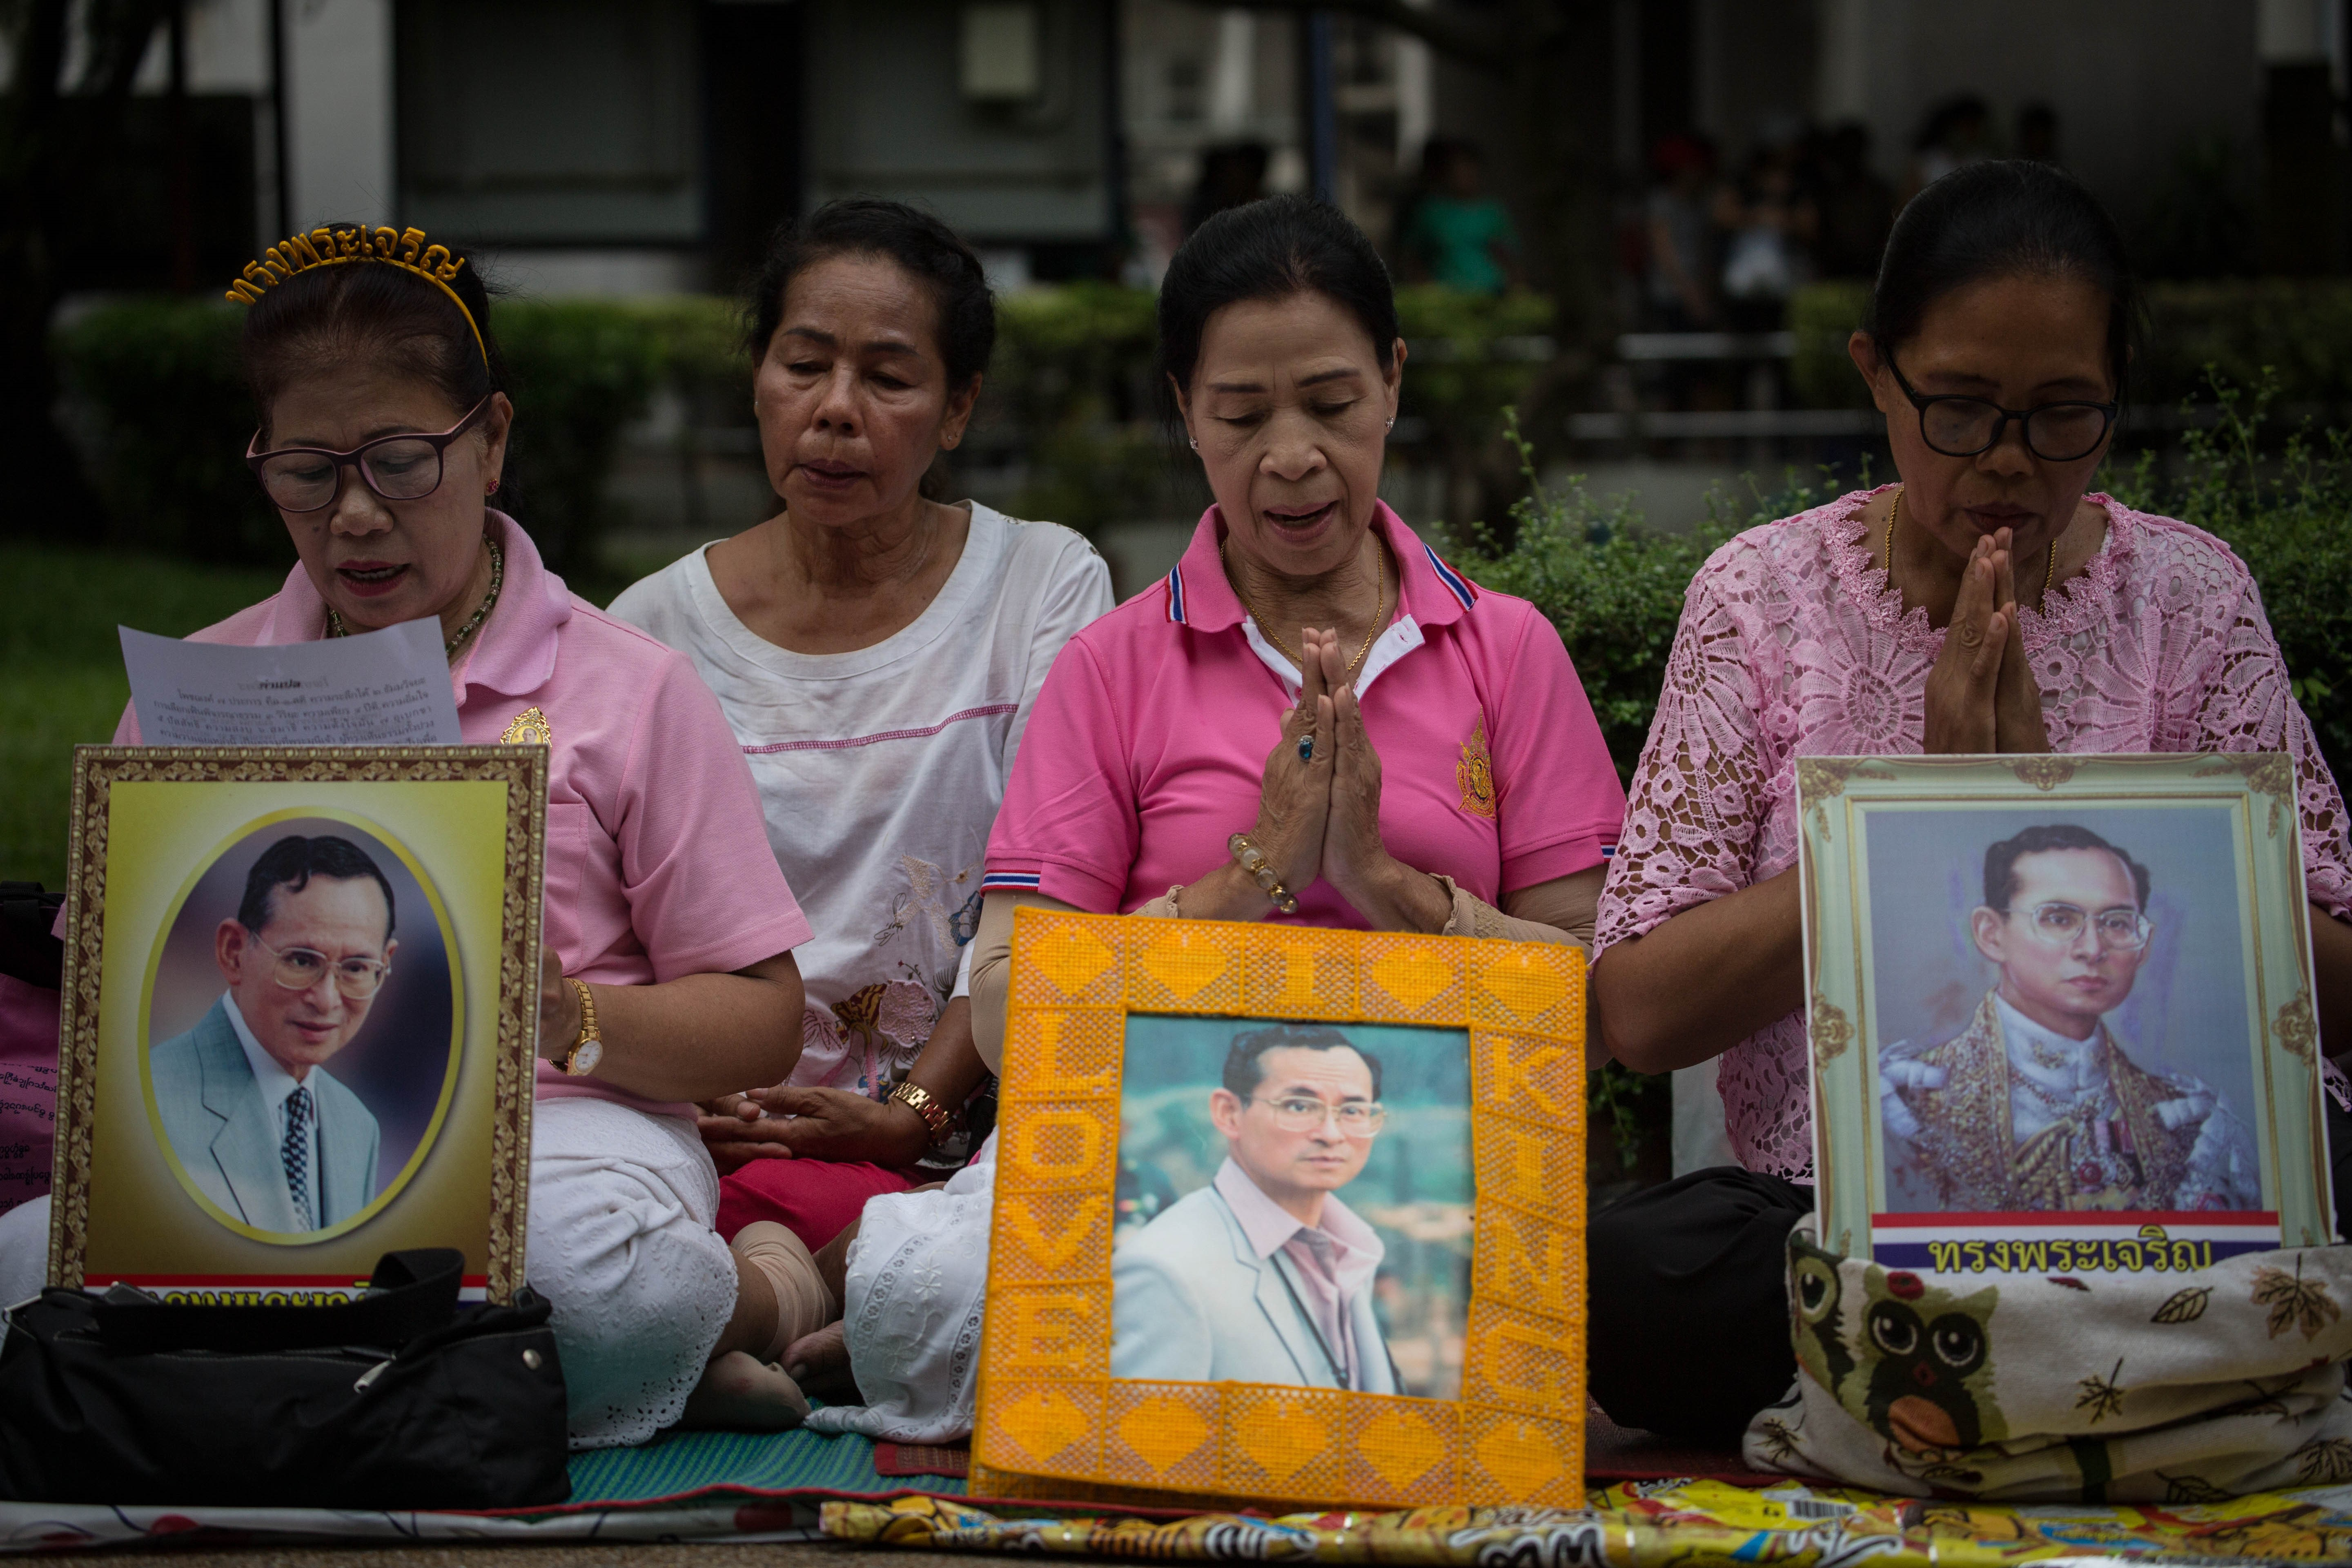 Thai Royalists holds several portraits of Thailand's King Bhumibol Adulyadej at Siriraj Hospital as his health has deteriorated and he's now in an unstable condition under medical ventilator said the Thai Palace in Bangkok on Oct. 12, 2016.